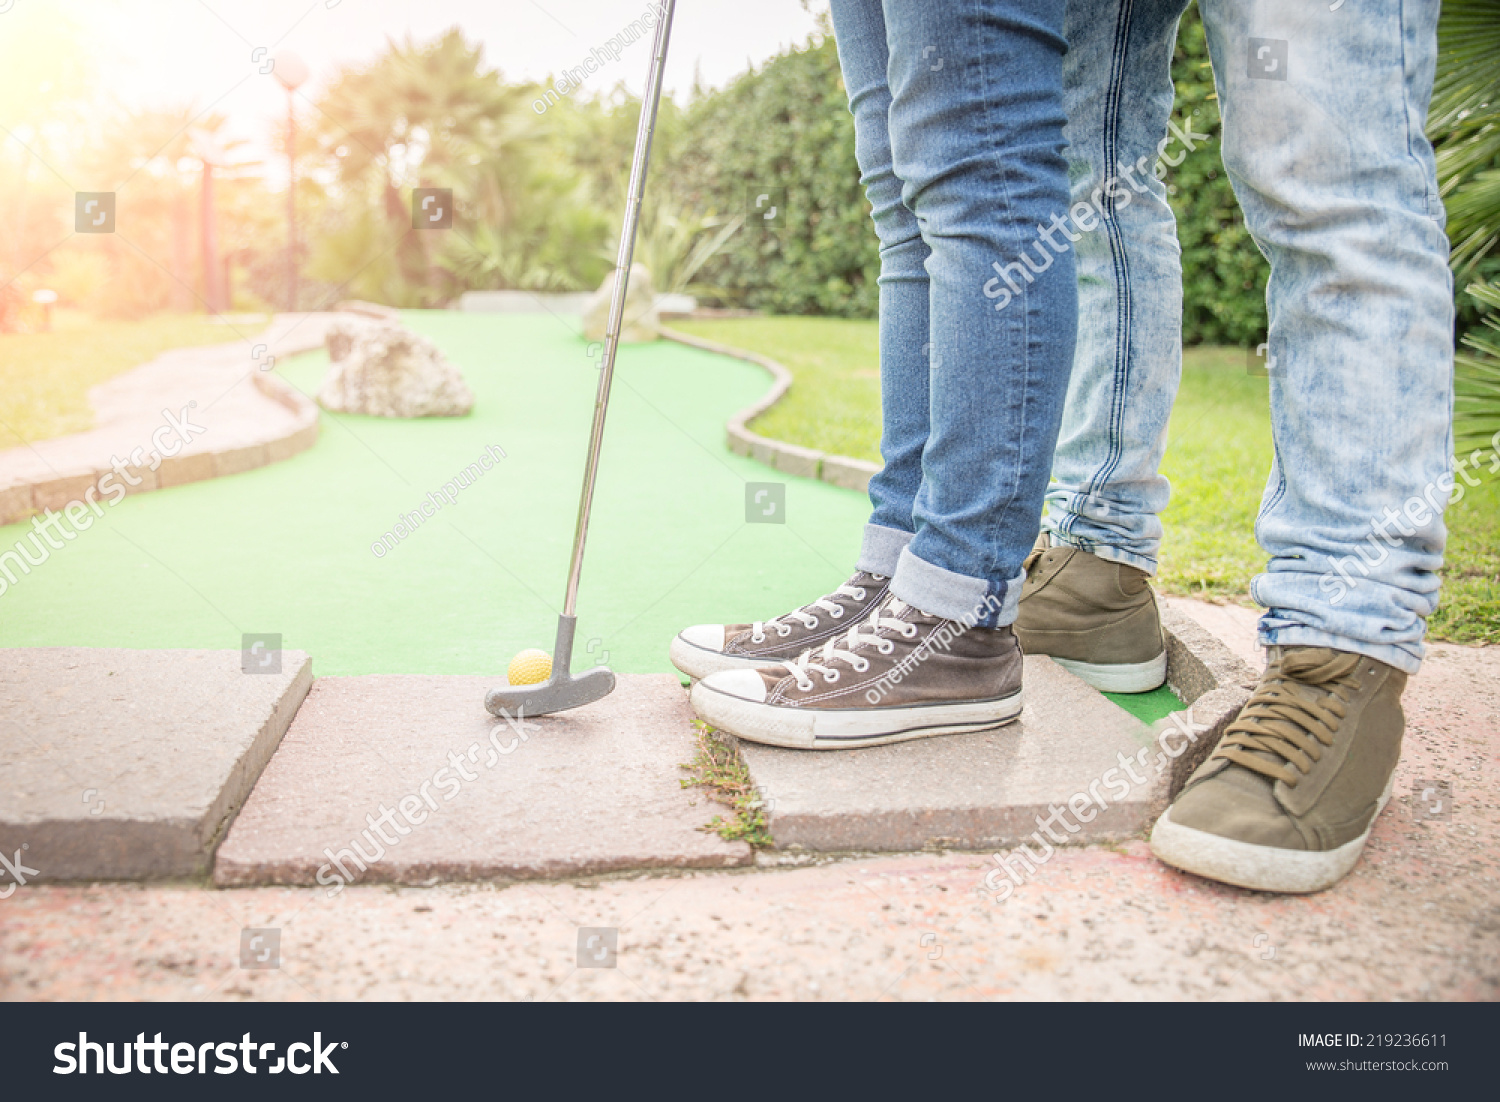 Mini Golf Club Boyfriend Teaching His Stock Photo